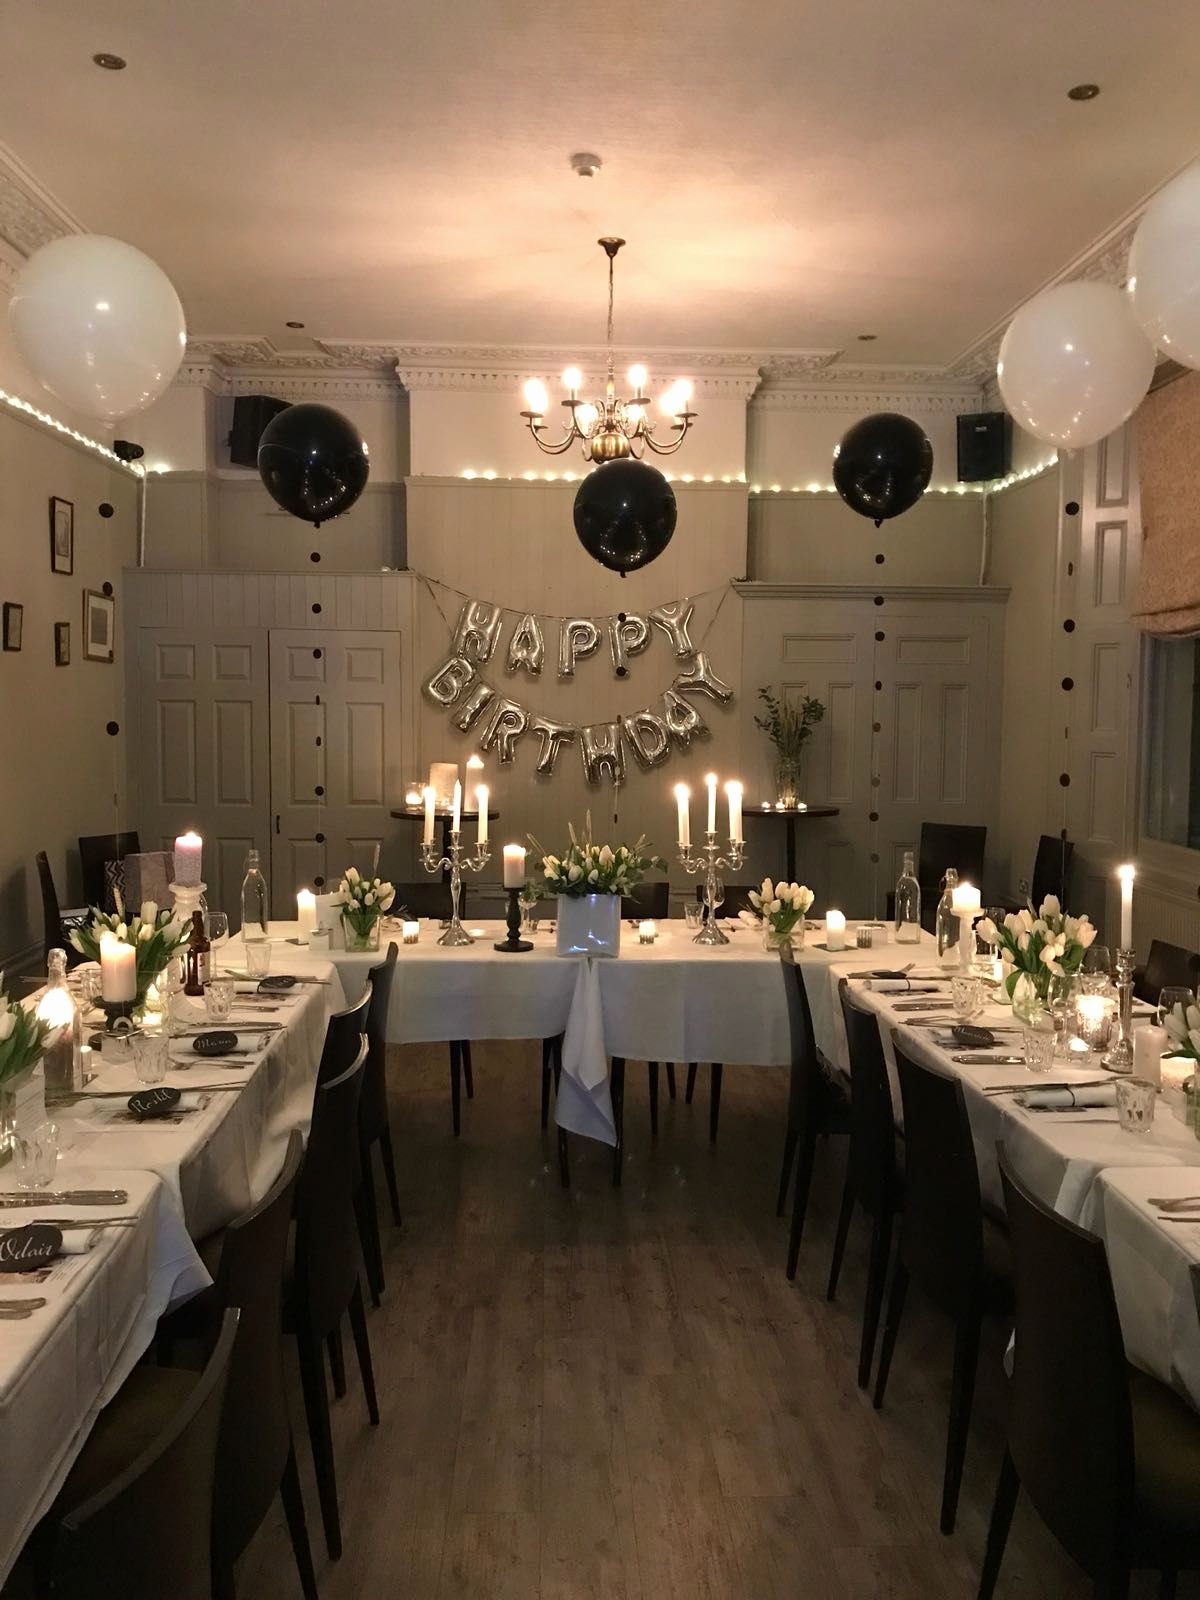 Restaurant Birthday Decoration Ideas Beautiful Classic Birthday Party